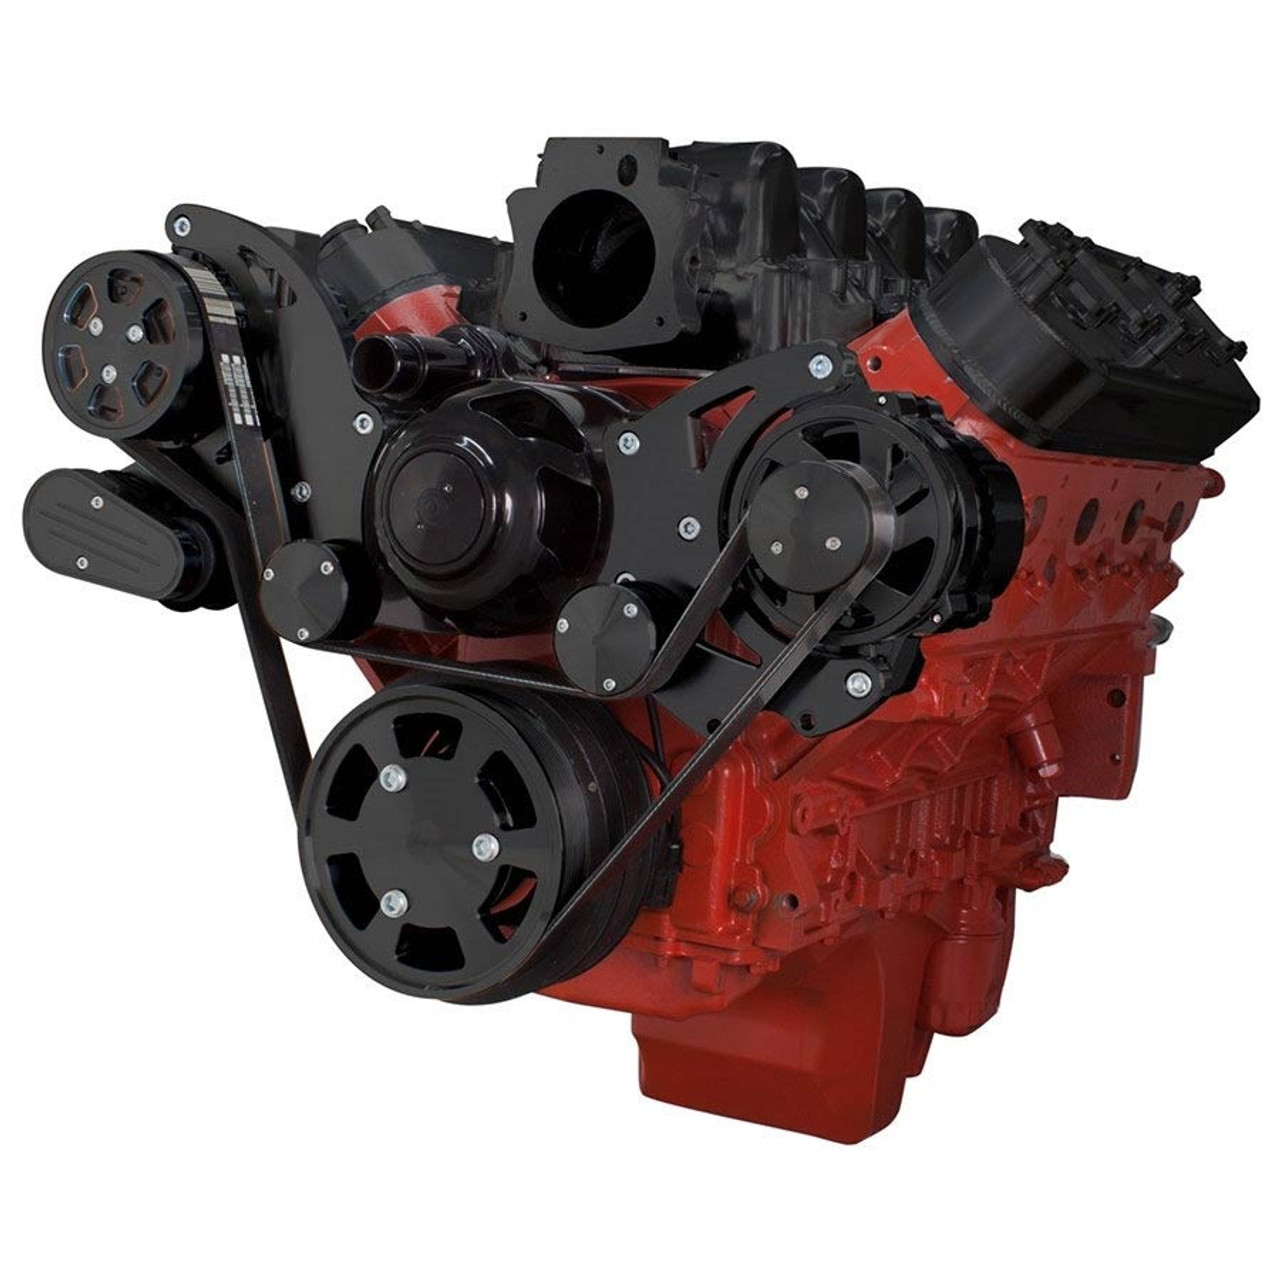 small resolution of stealth black chevy ls engine serpentine kit alternator only with electric water pump